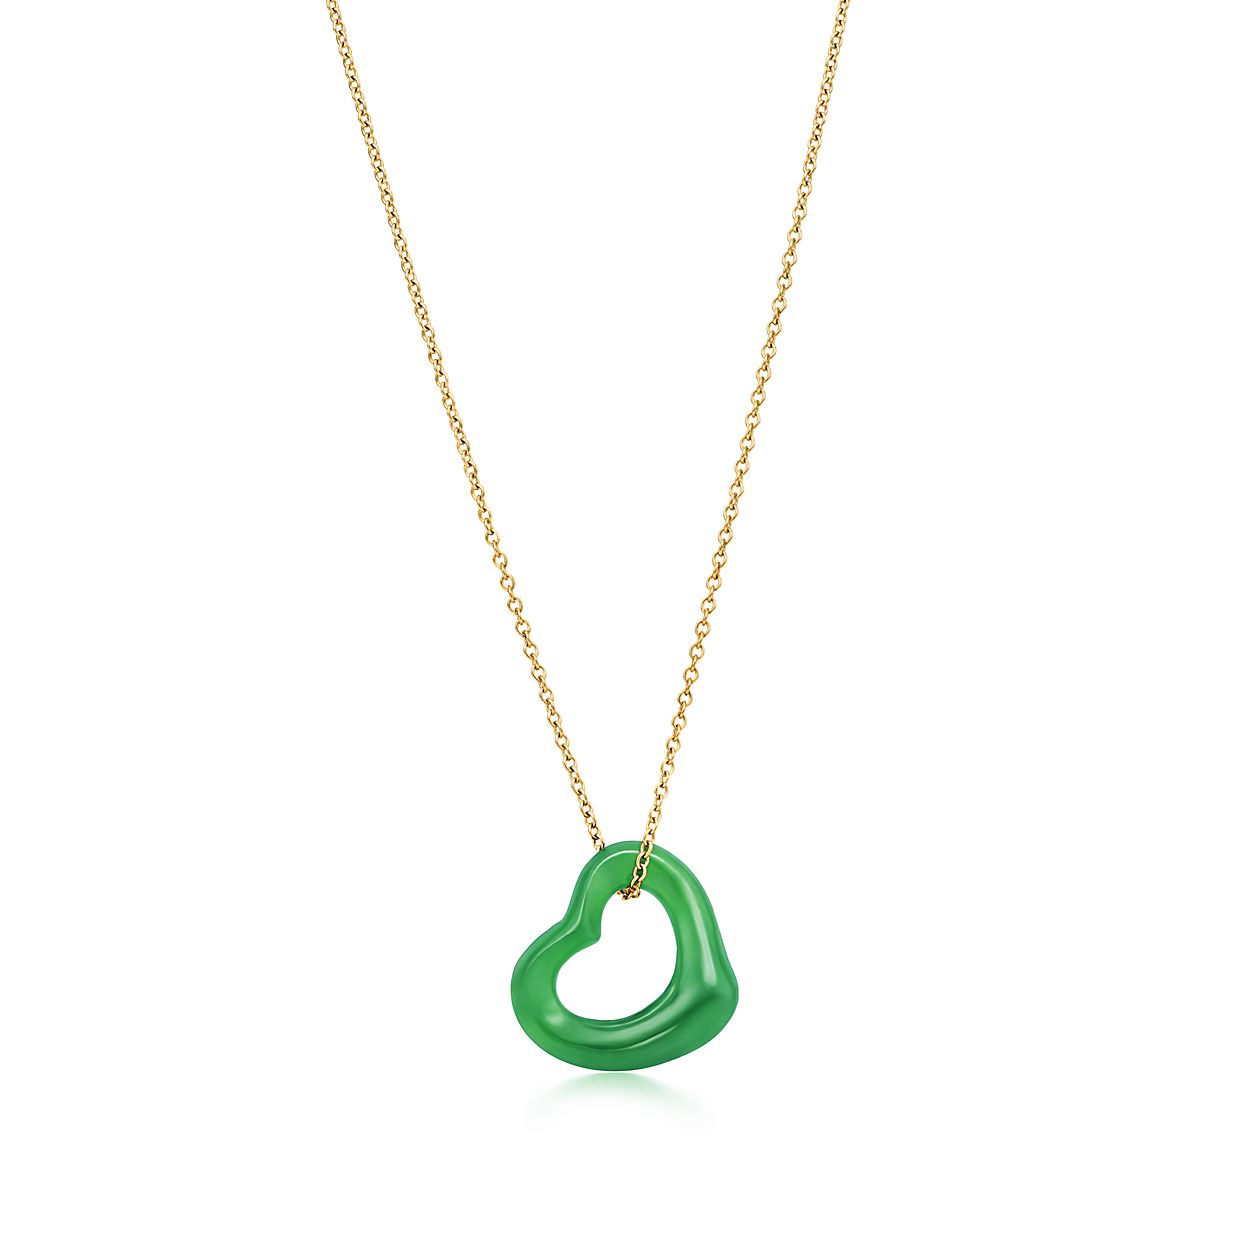 color bling jewelry cz jd style vintage green jade teardrop gemstone pendant my necklace silver